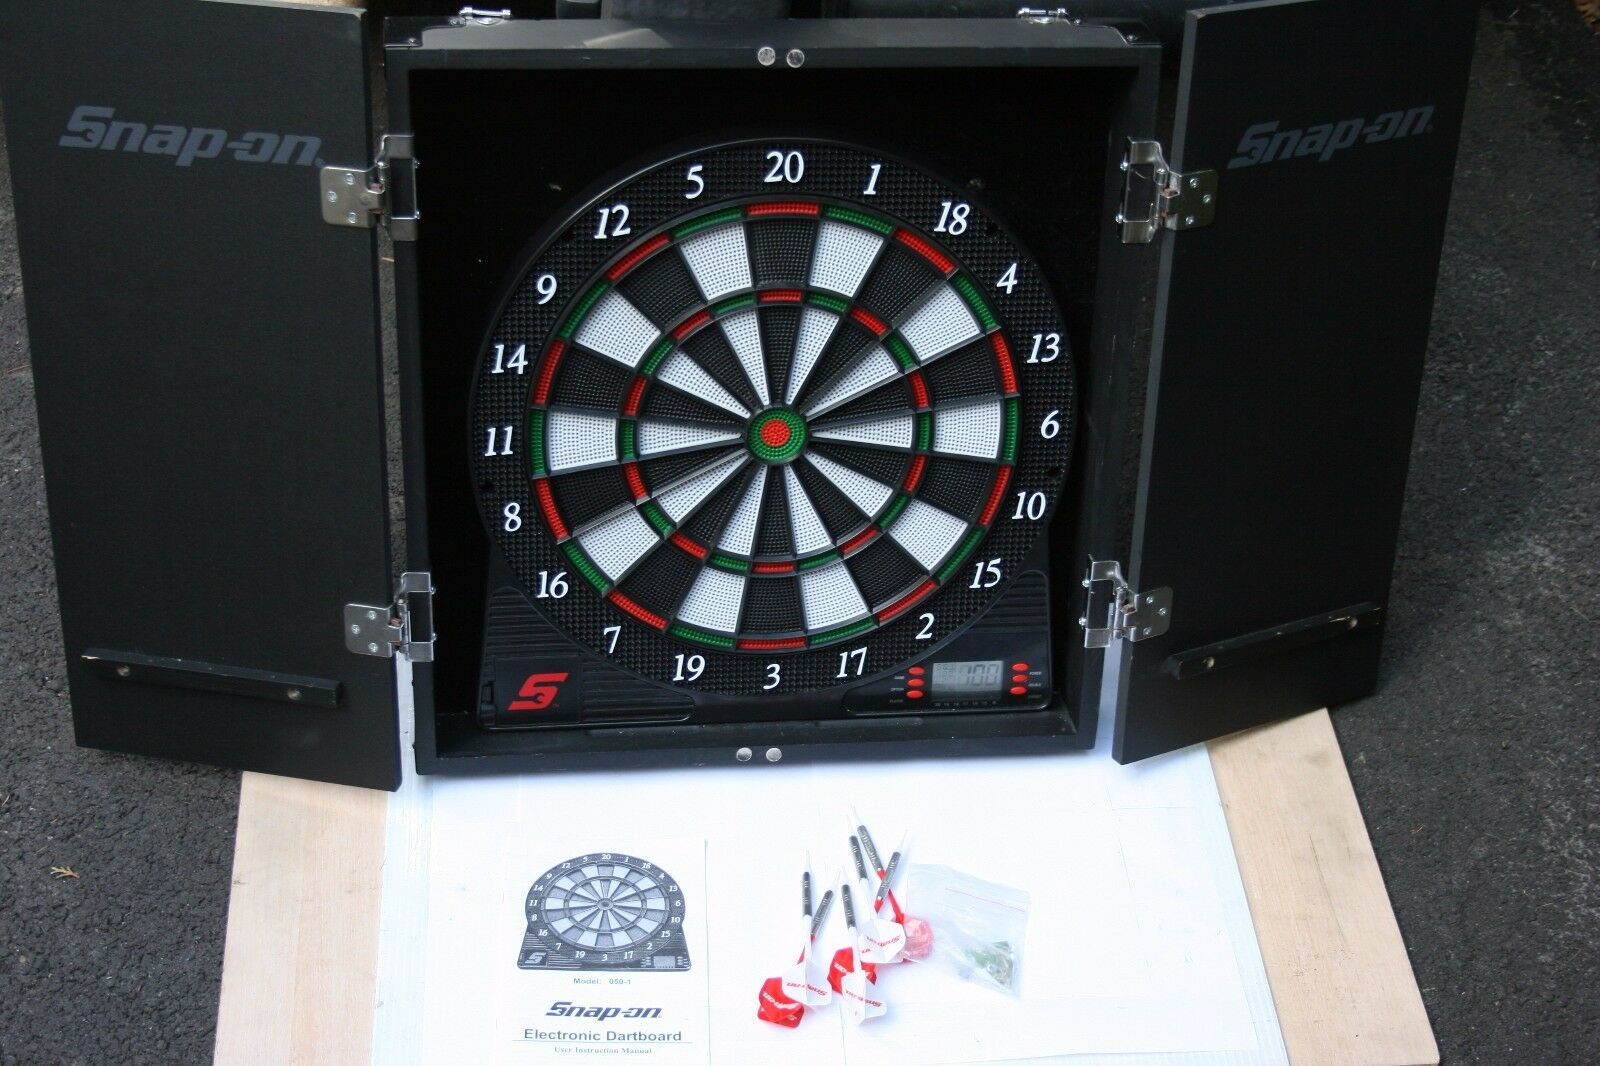 SNAP-ON TOOLS Electronic in Dart Board in Electronic Wooden Case with Darts 074d14